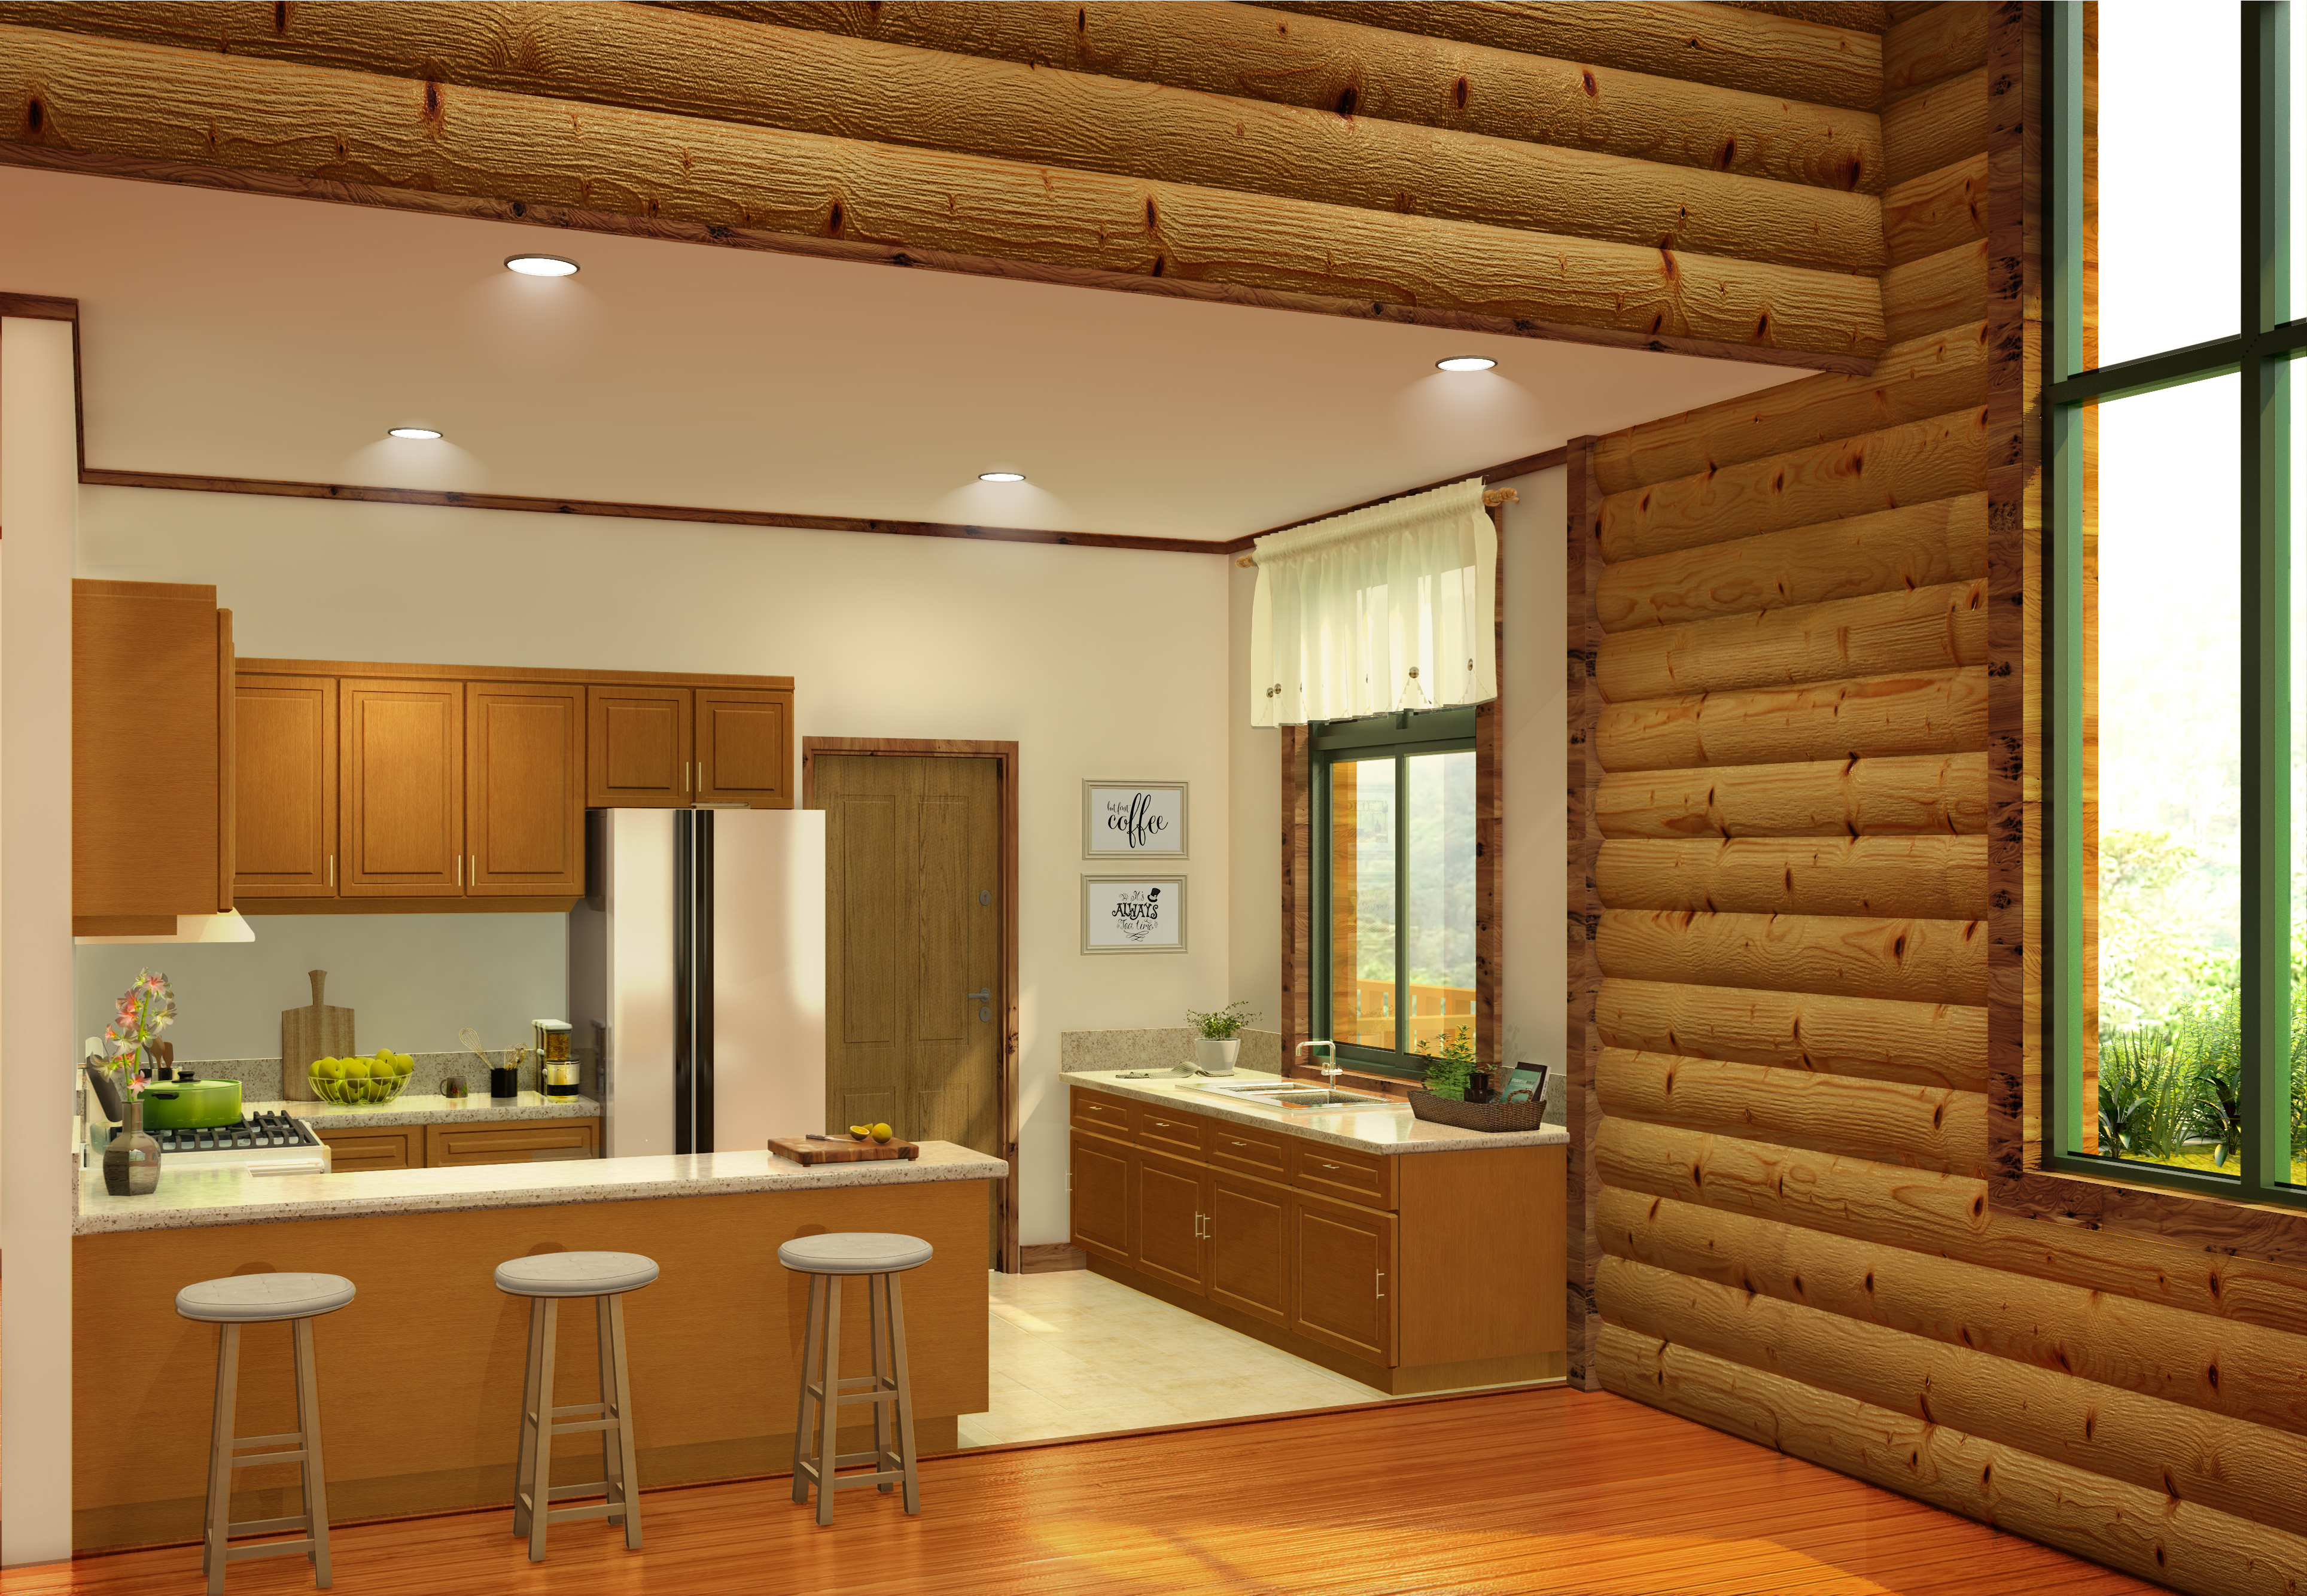 semi modern log cabin 3D model - Kitchen